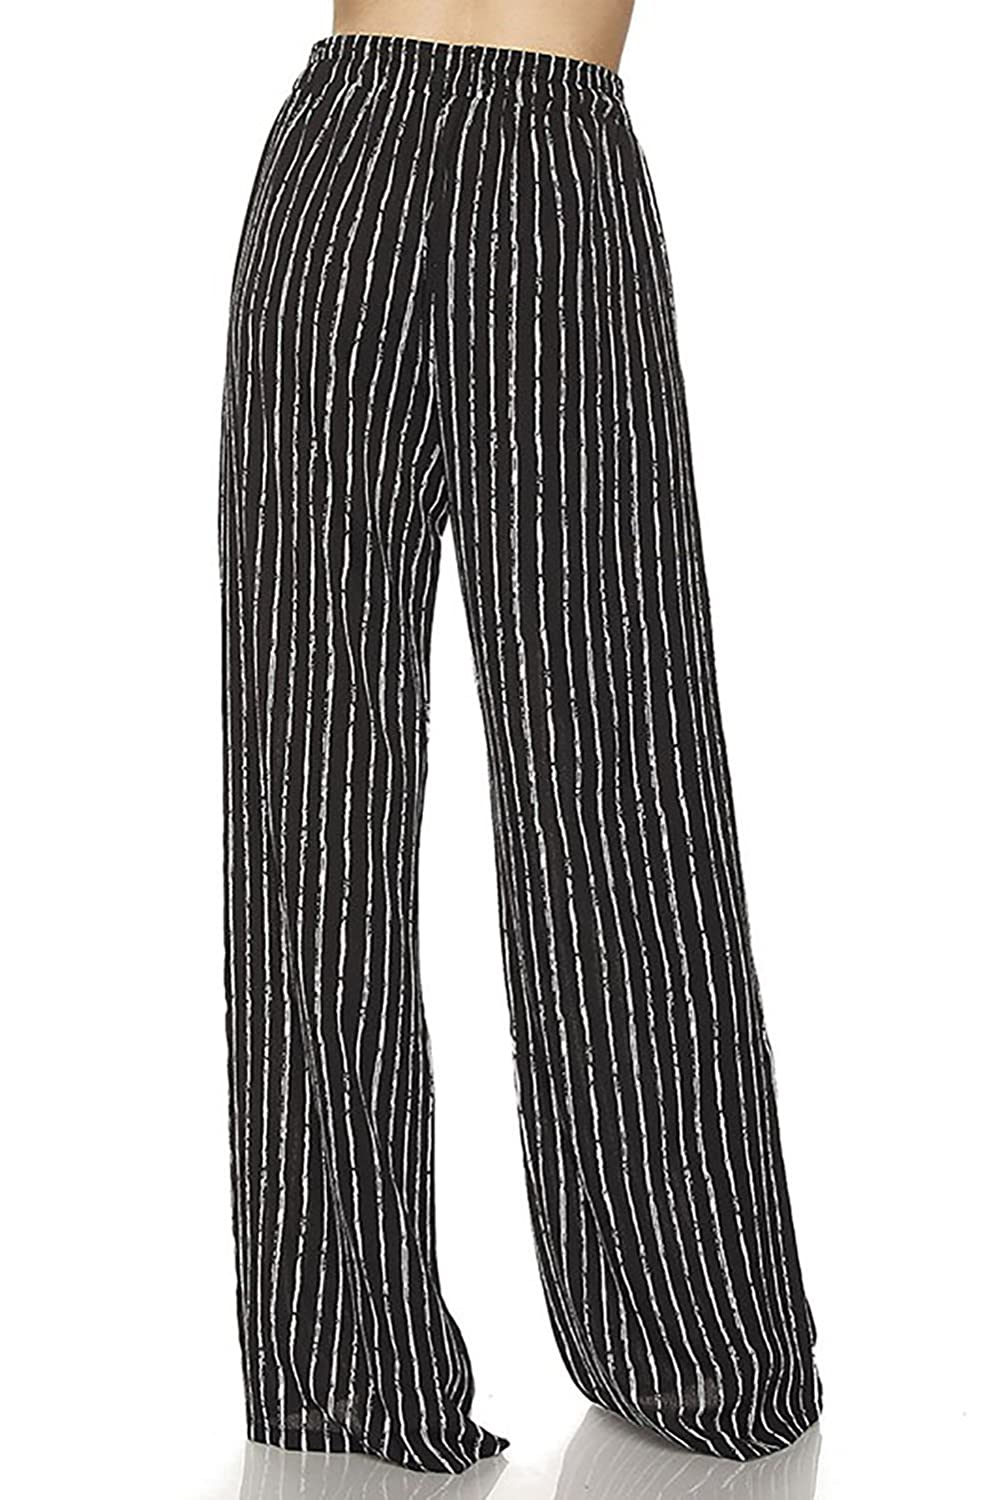 f8a56638734c3 Vina Vino Women's Striped Ultra Wide Leg Stretchy Palazzo Pants at Amazon  Women's Clothing store: